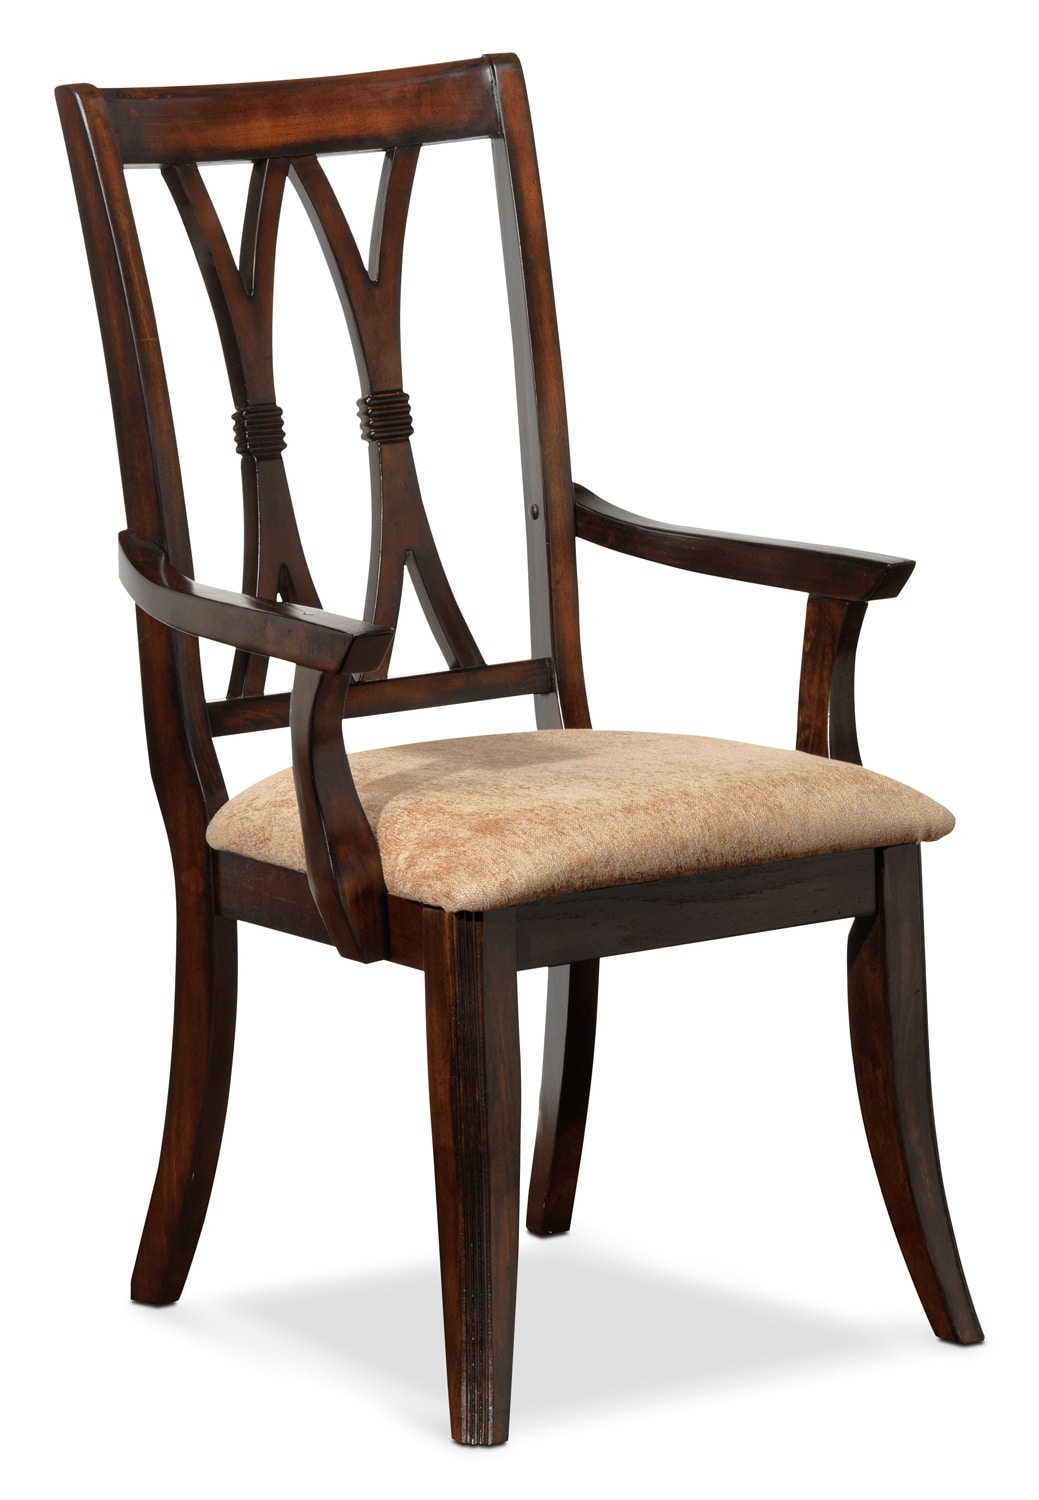 Dining Room Furniture - King George Arm Chair - Brown Cherry